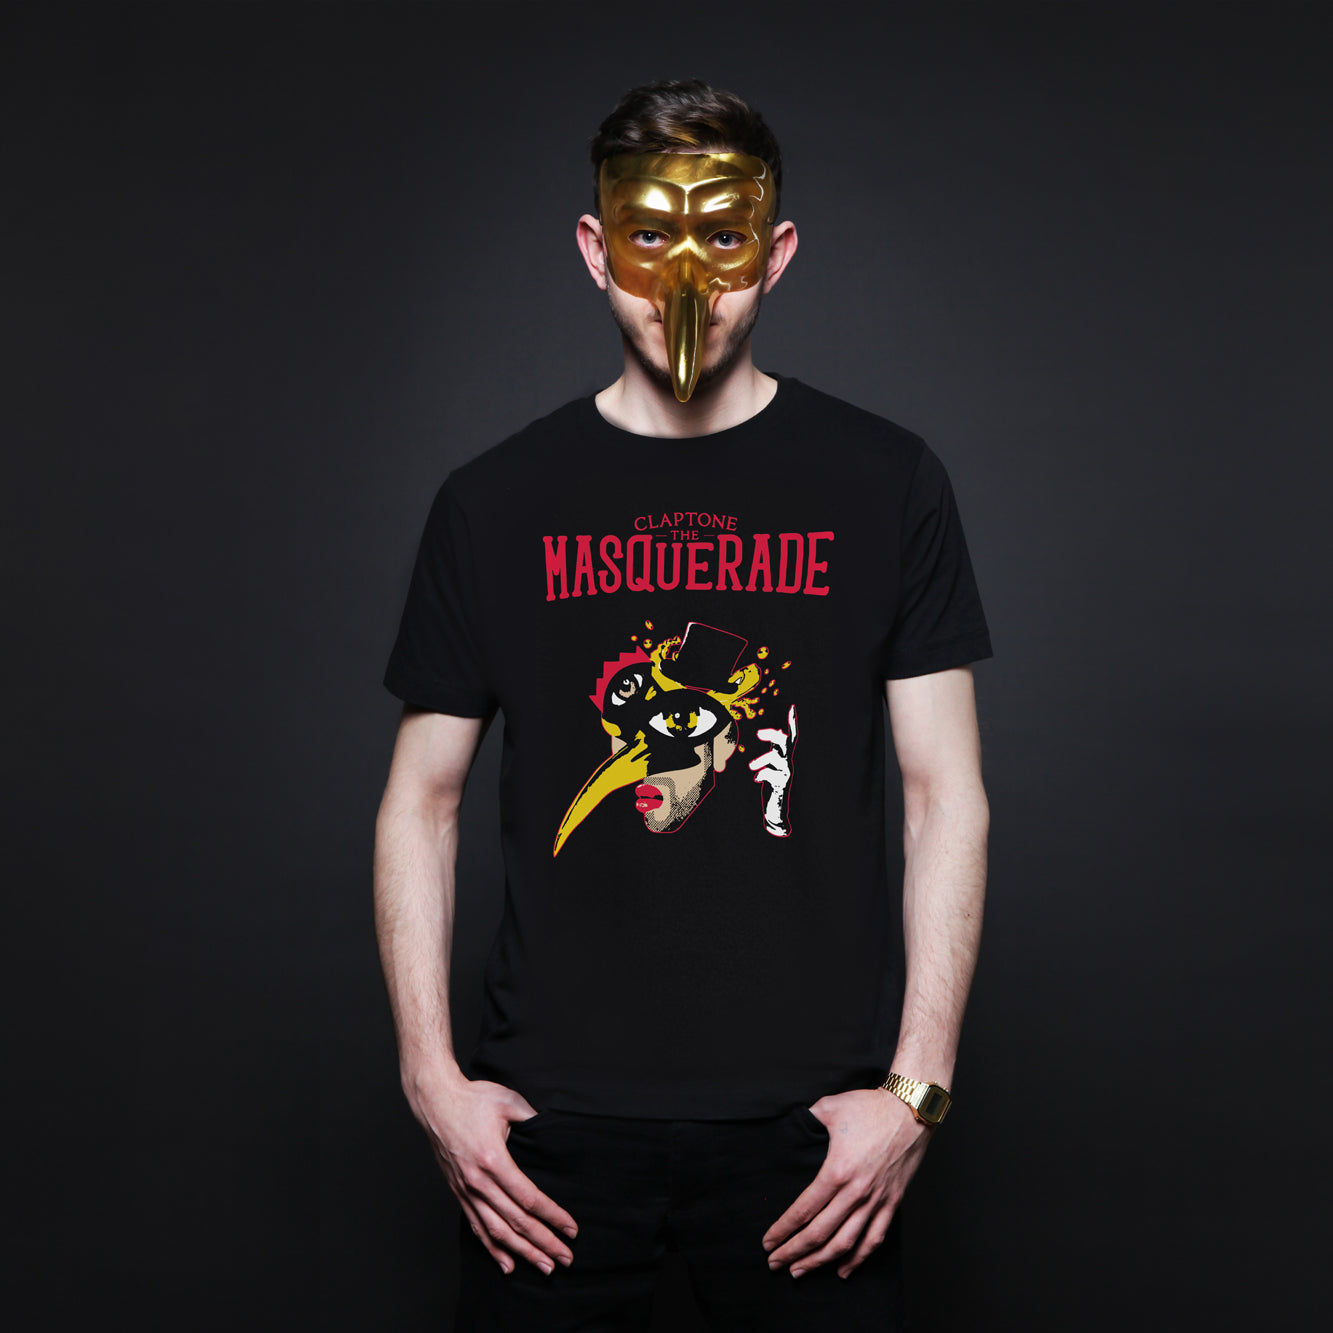 CLAPTONE T-Shirt: The Masquerade Black - Men's